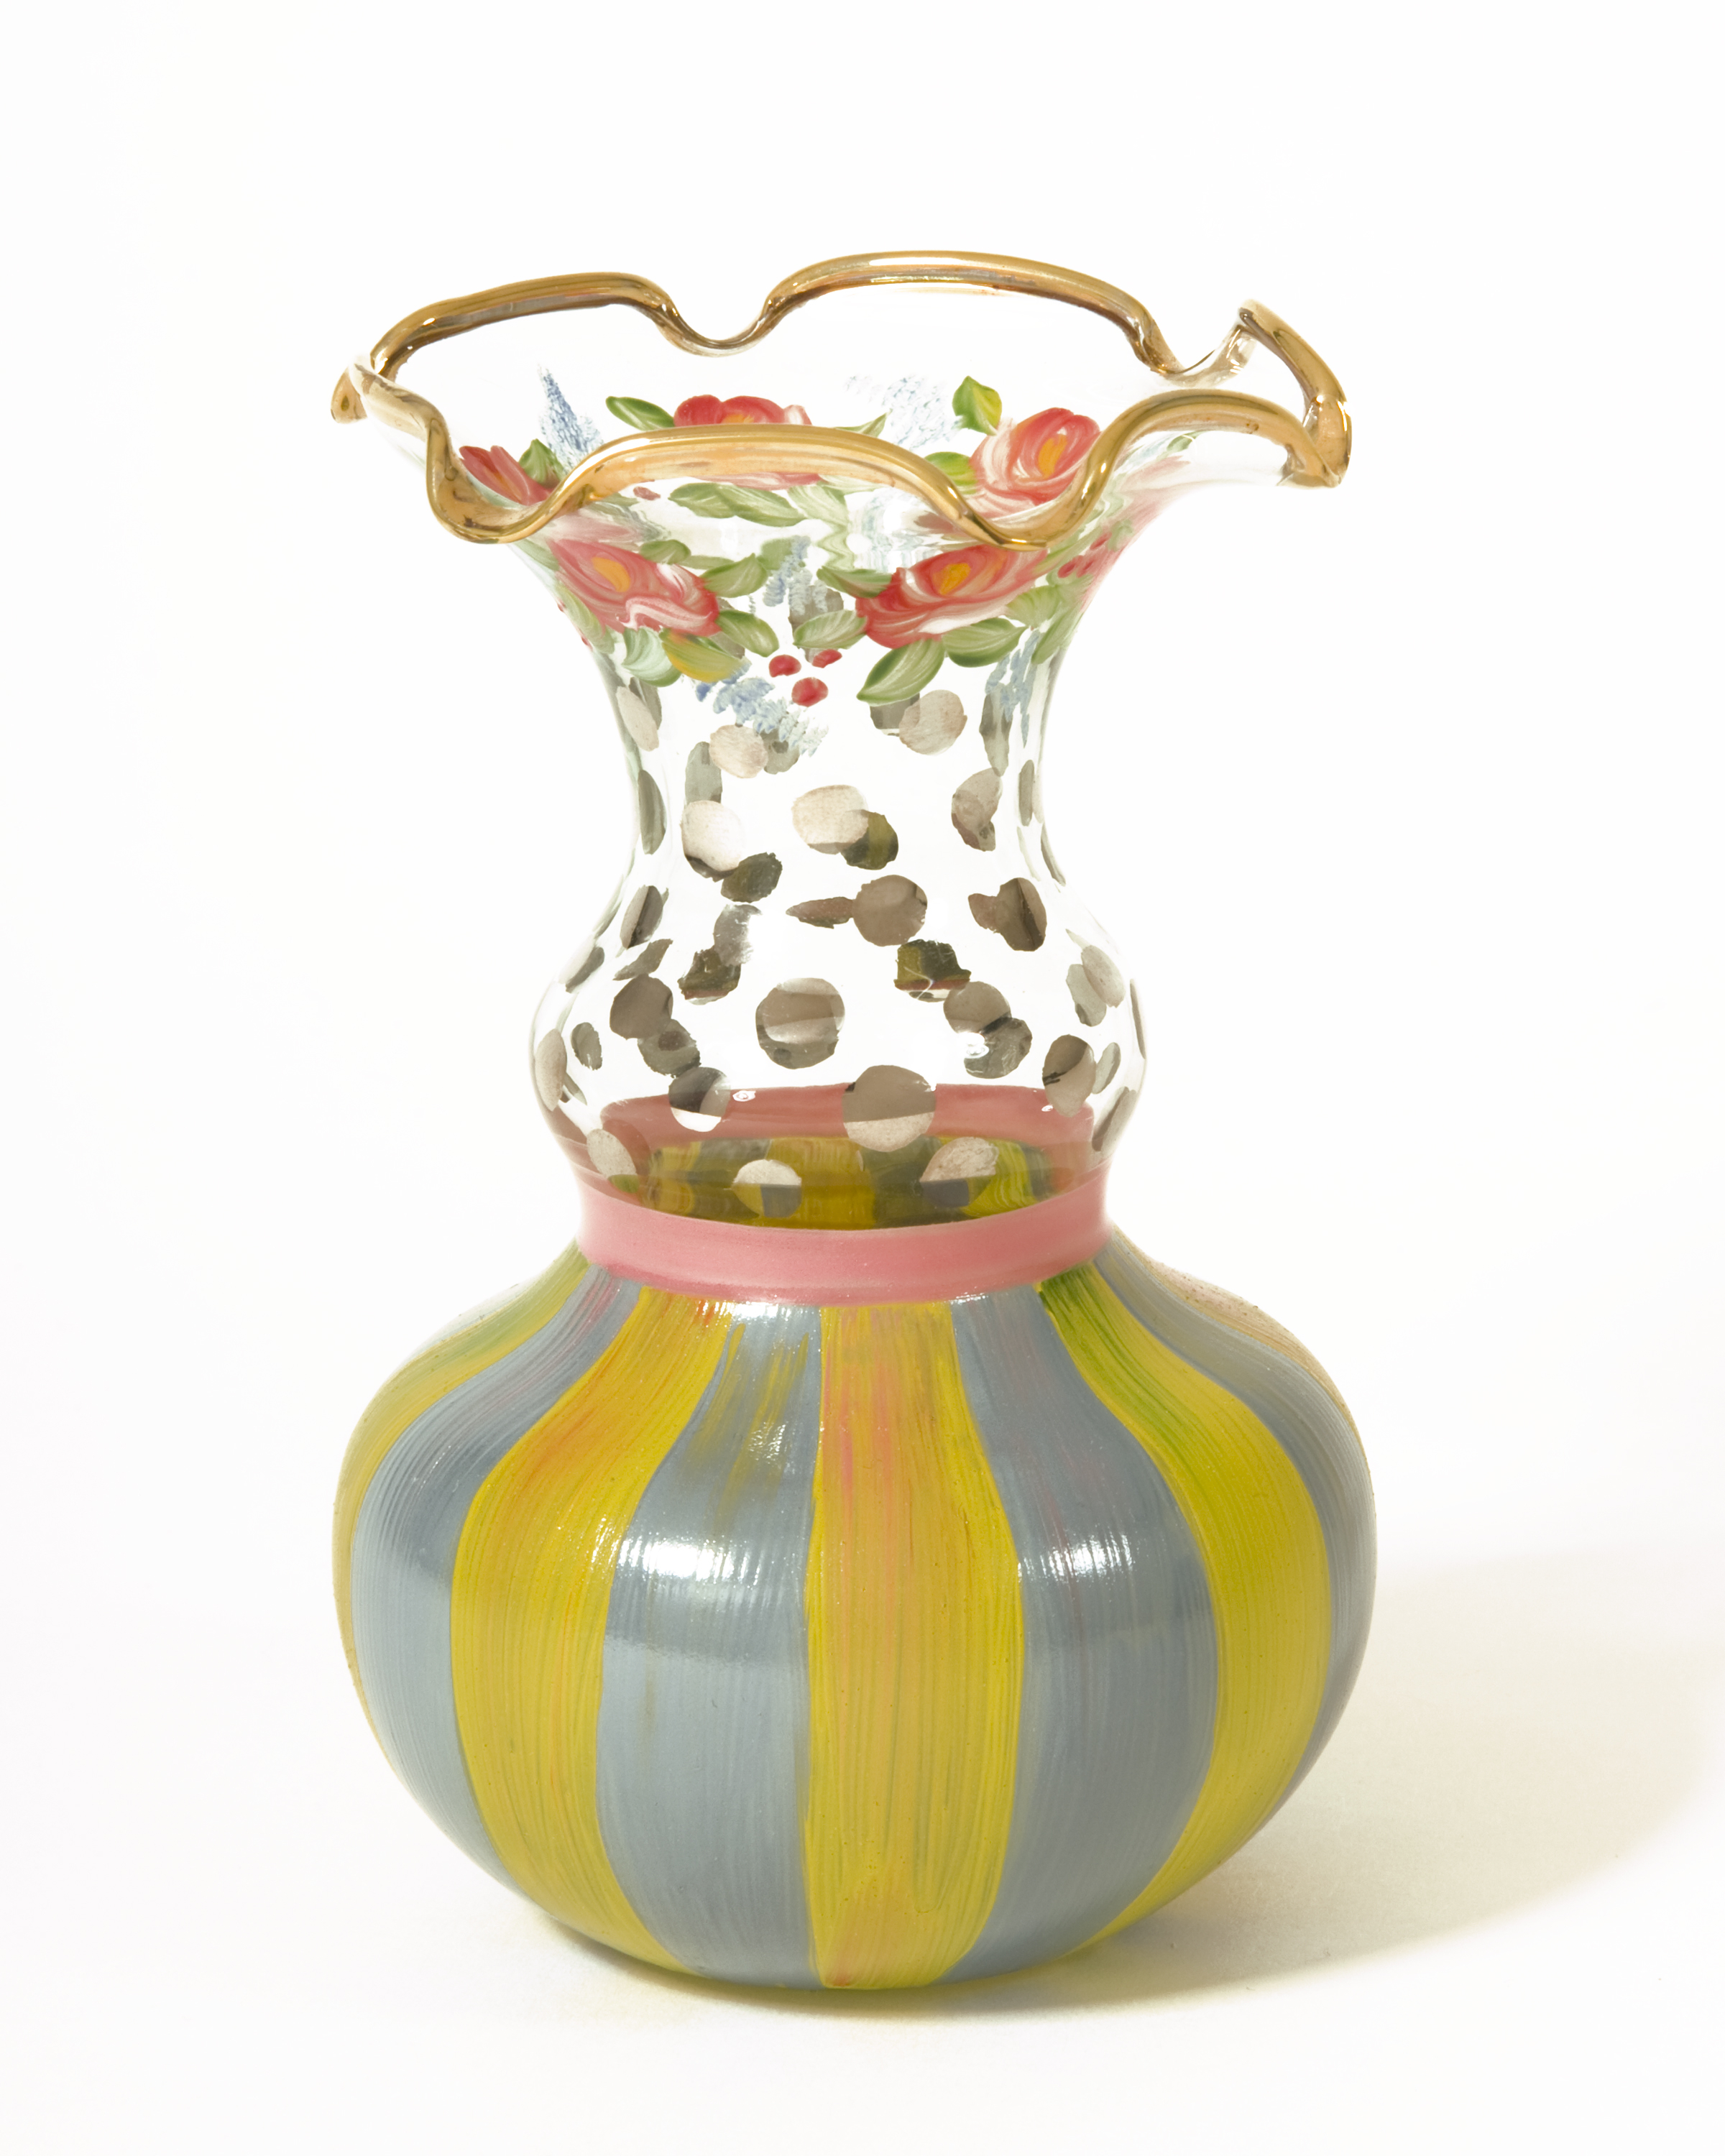 This vase is great for moms who like unique accessories for their home